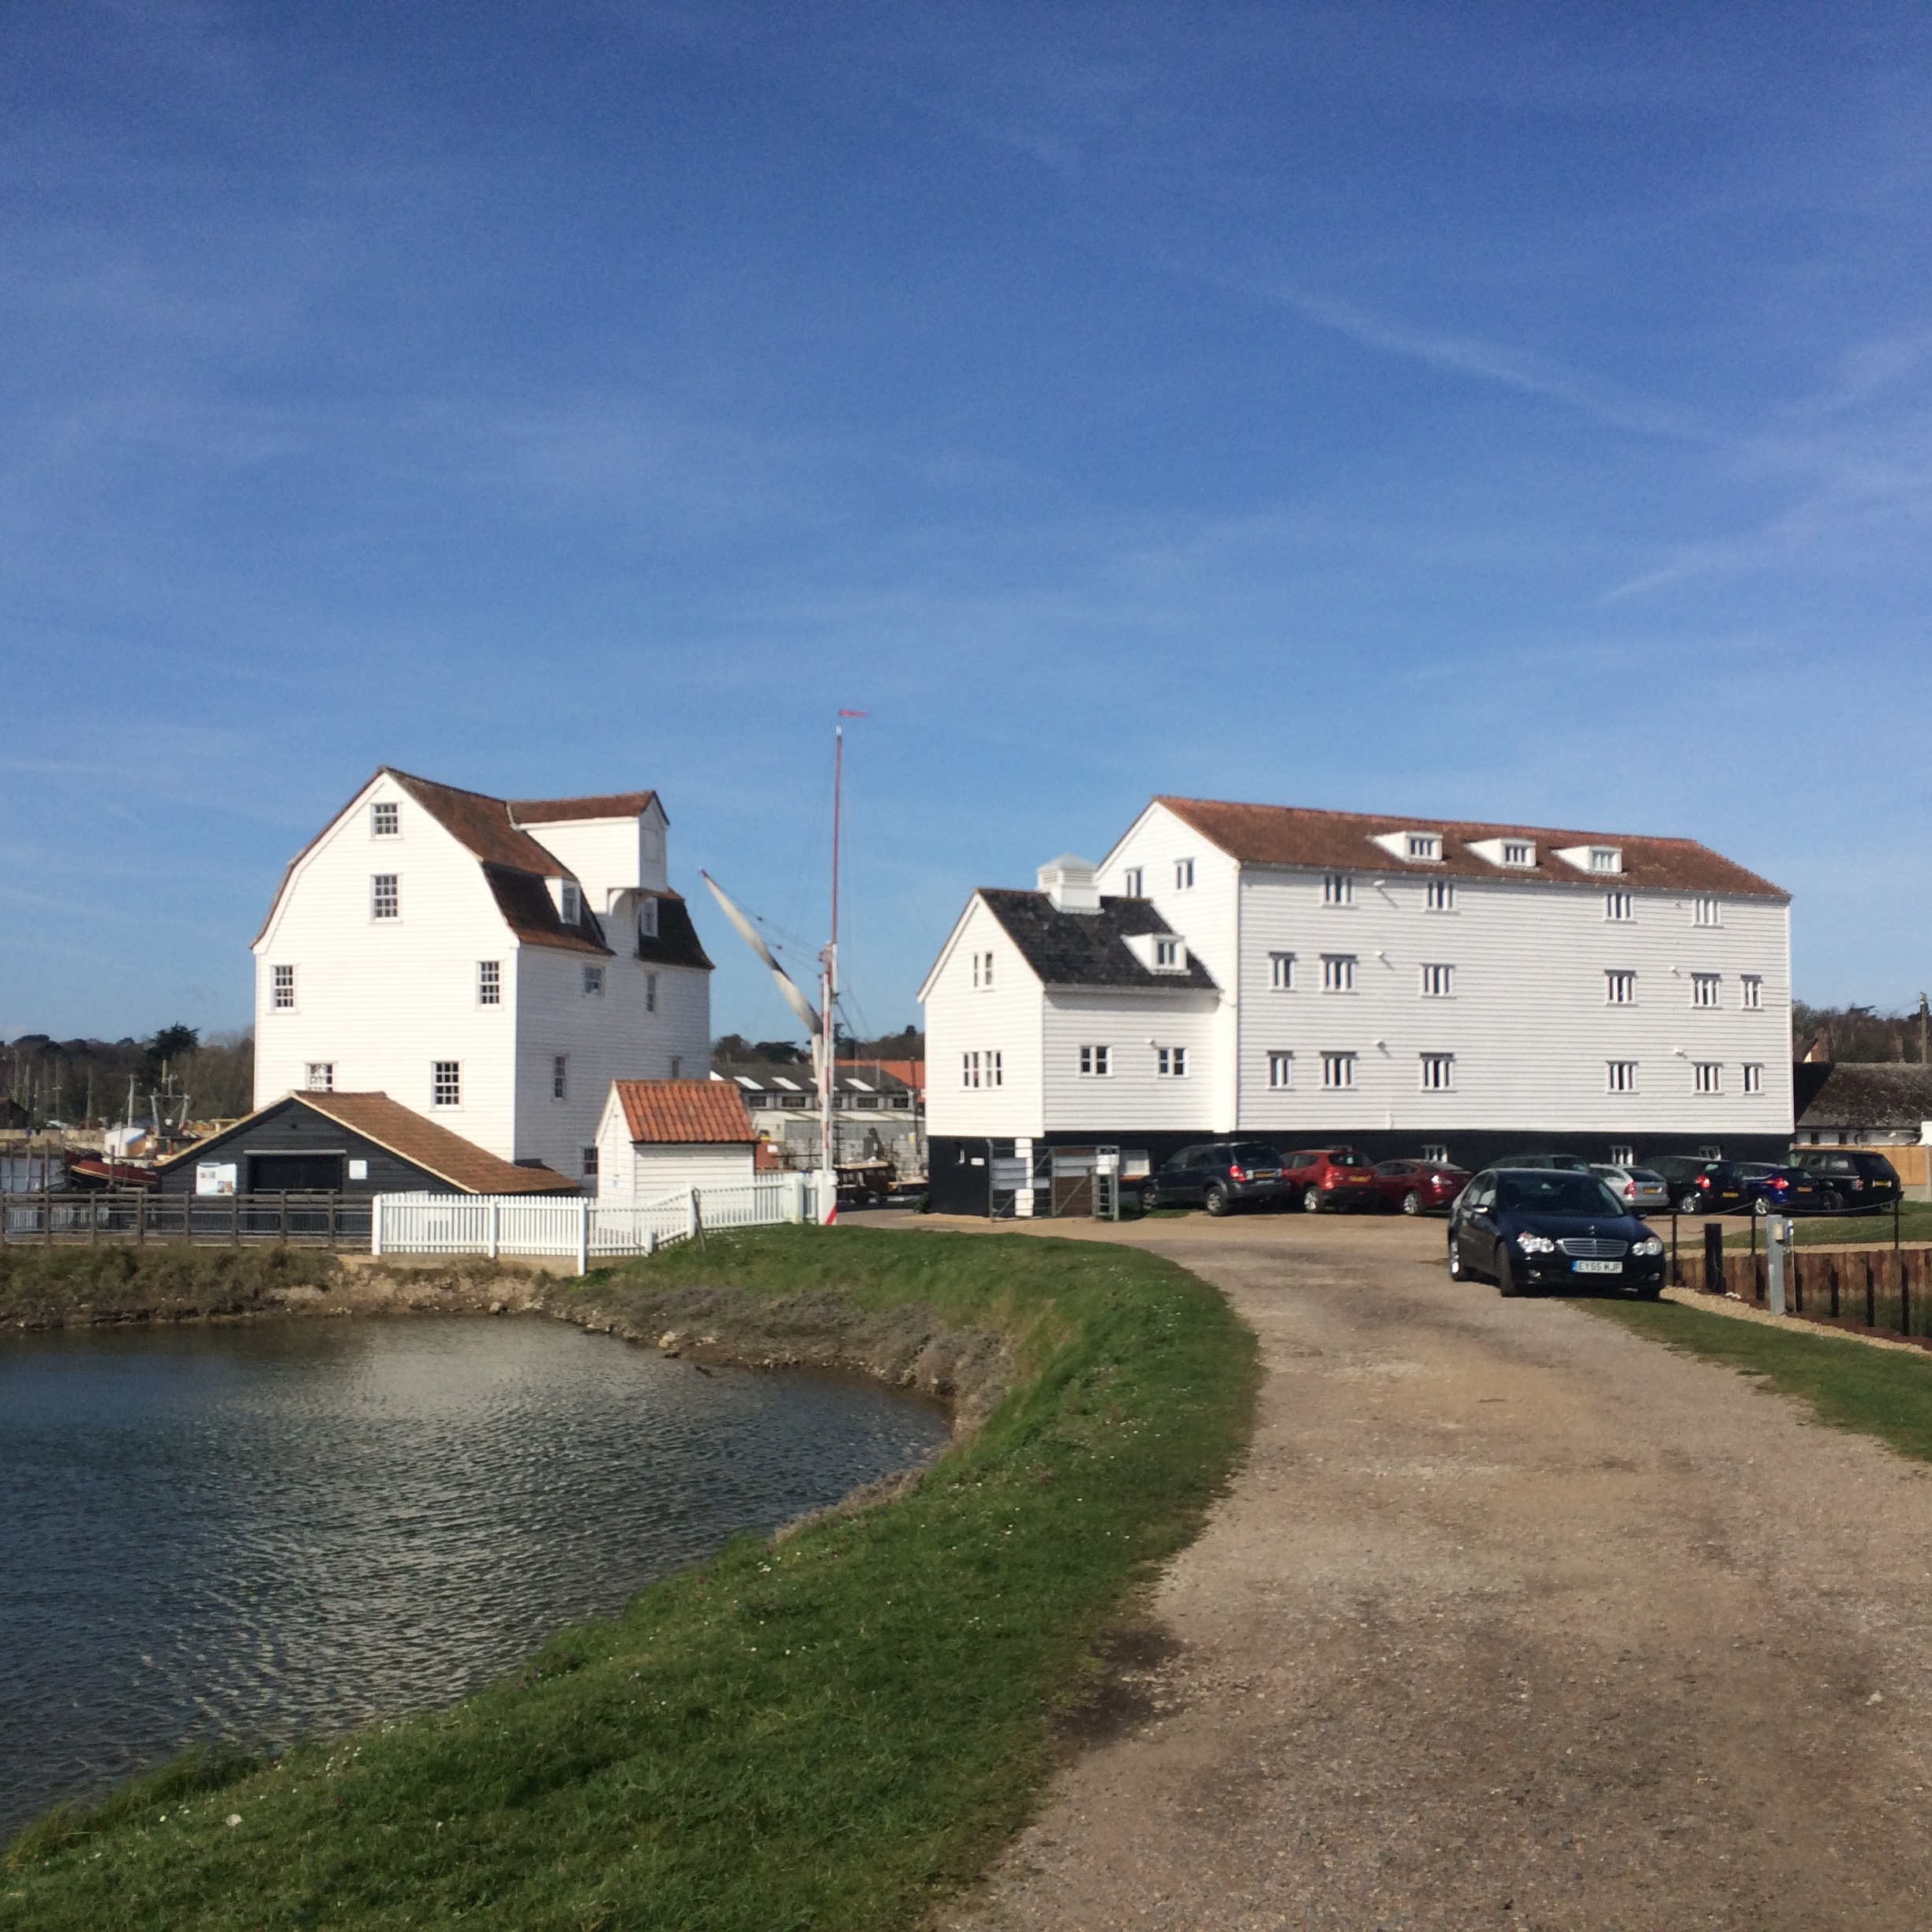 The Tide Mill in Suffolk